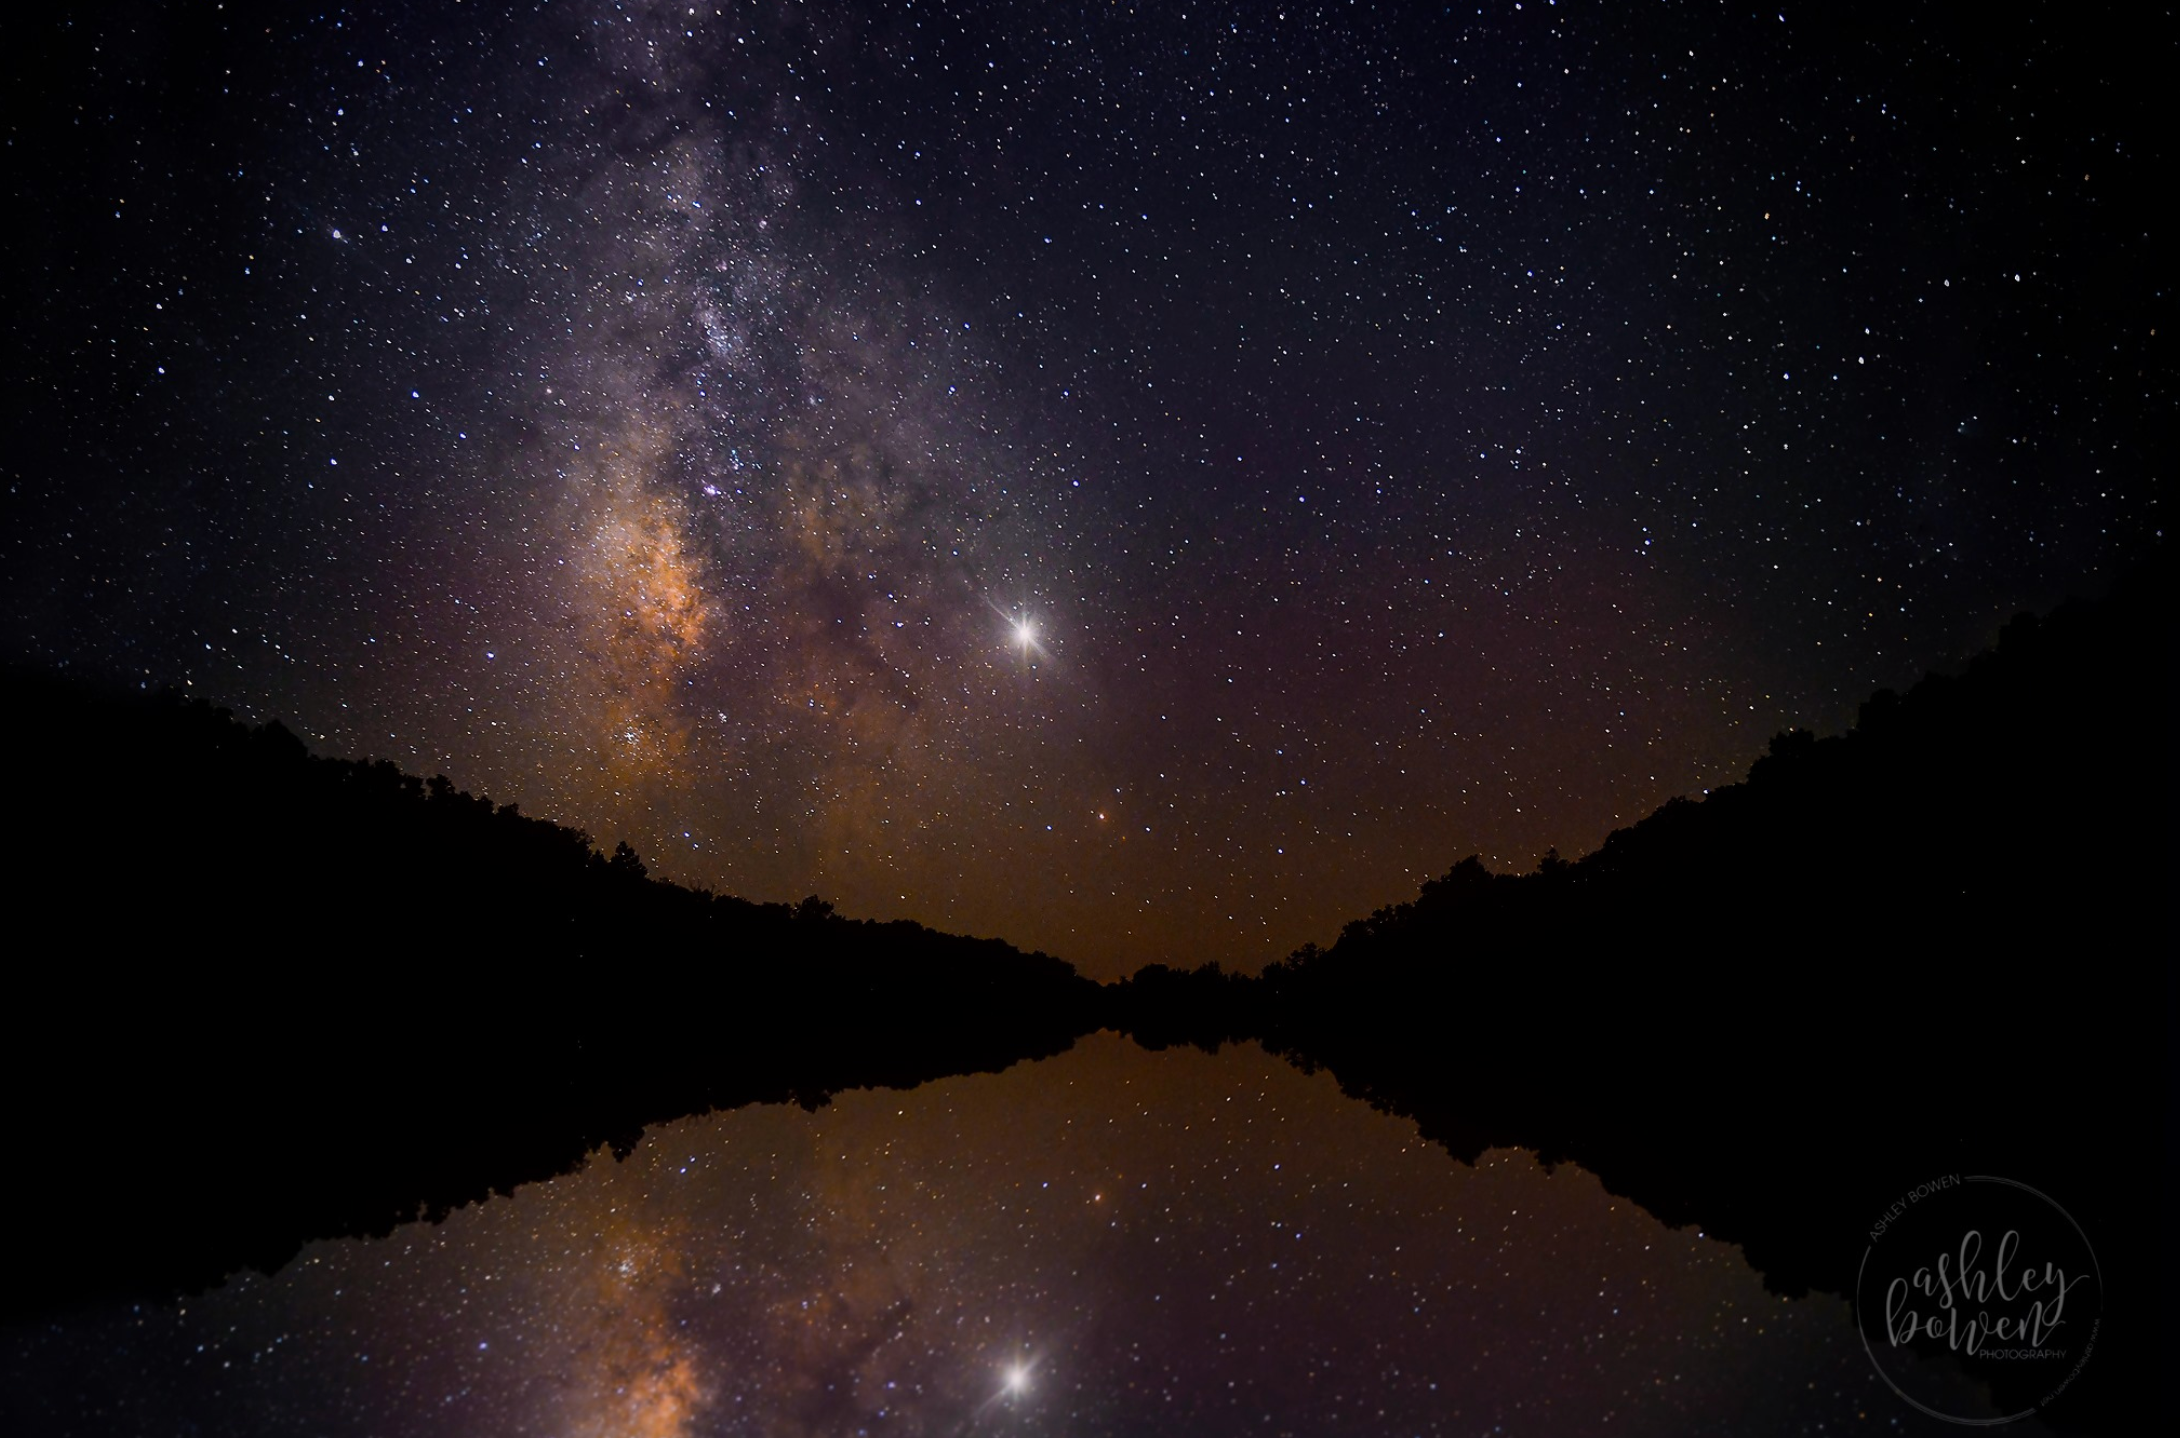 Loggers Lake in Missouri. I took this while we were camping off the grid! Saturn is the brightest object in the sky!